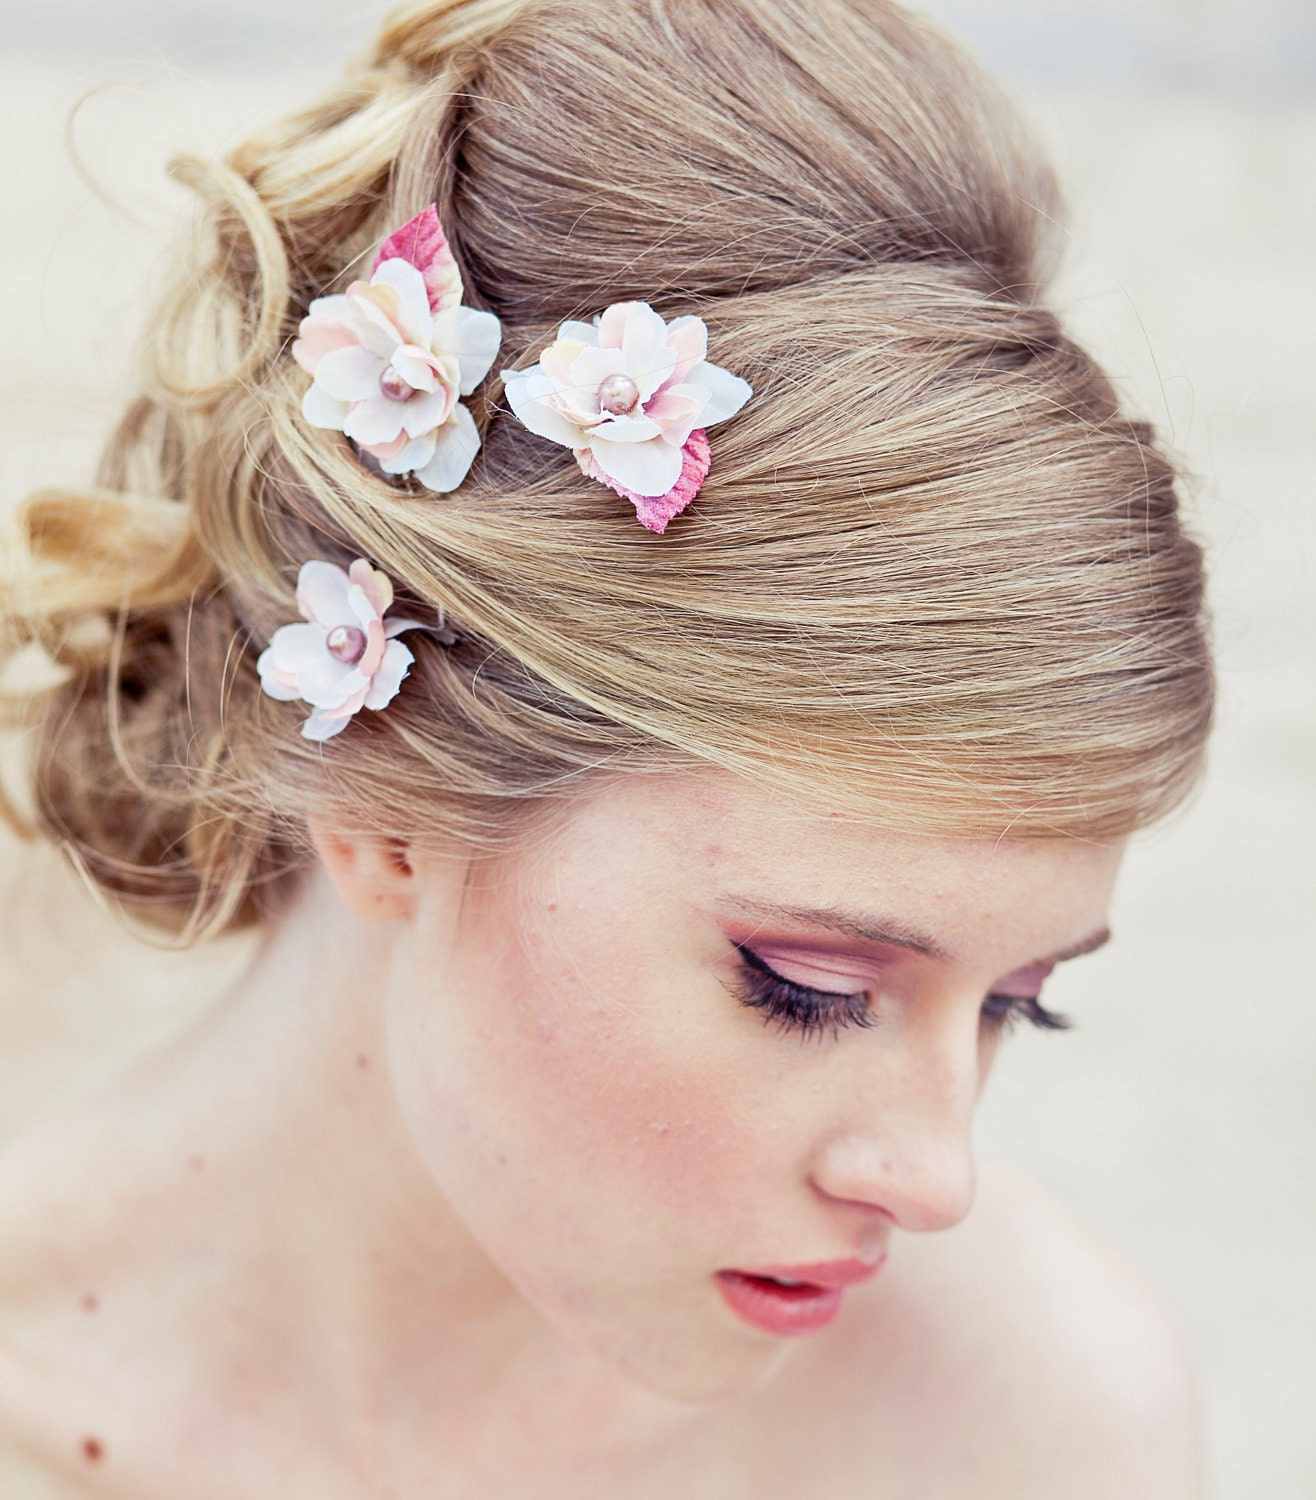 Wedding Flower For Hair: Wedding Hair Accessory Set Of Three Flower Bobby Pins In Ivory